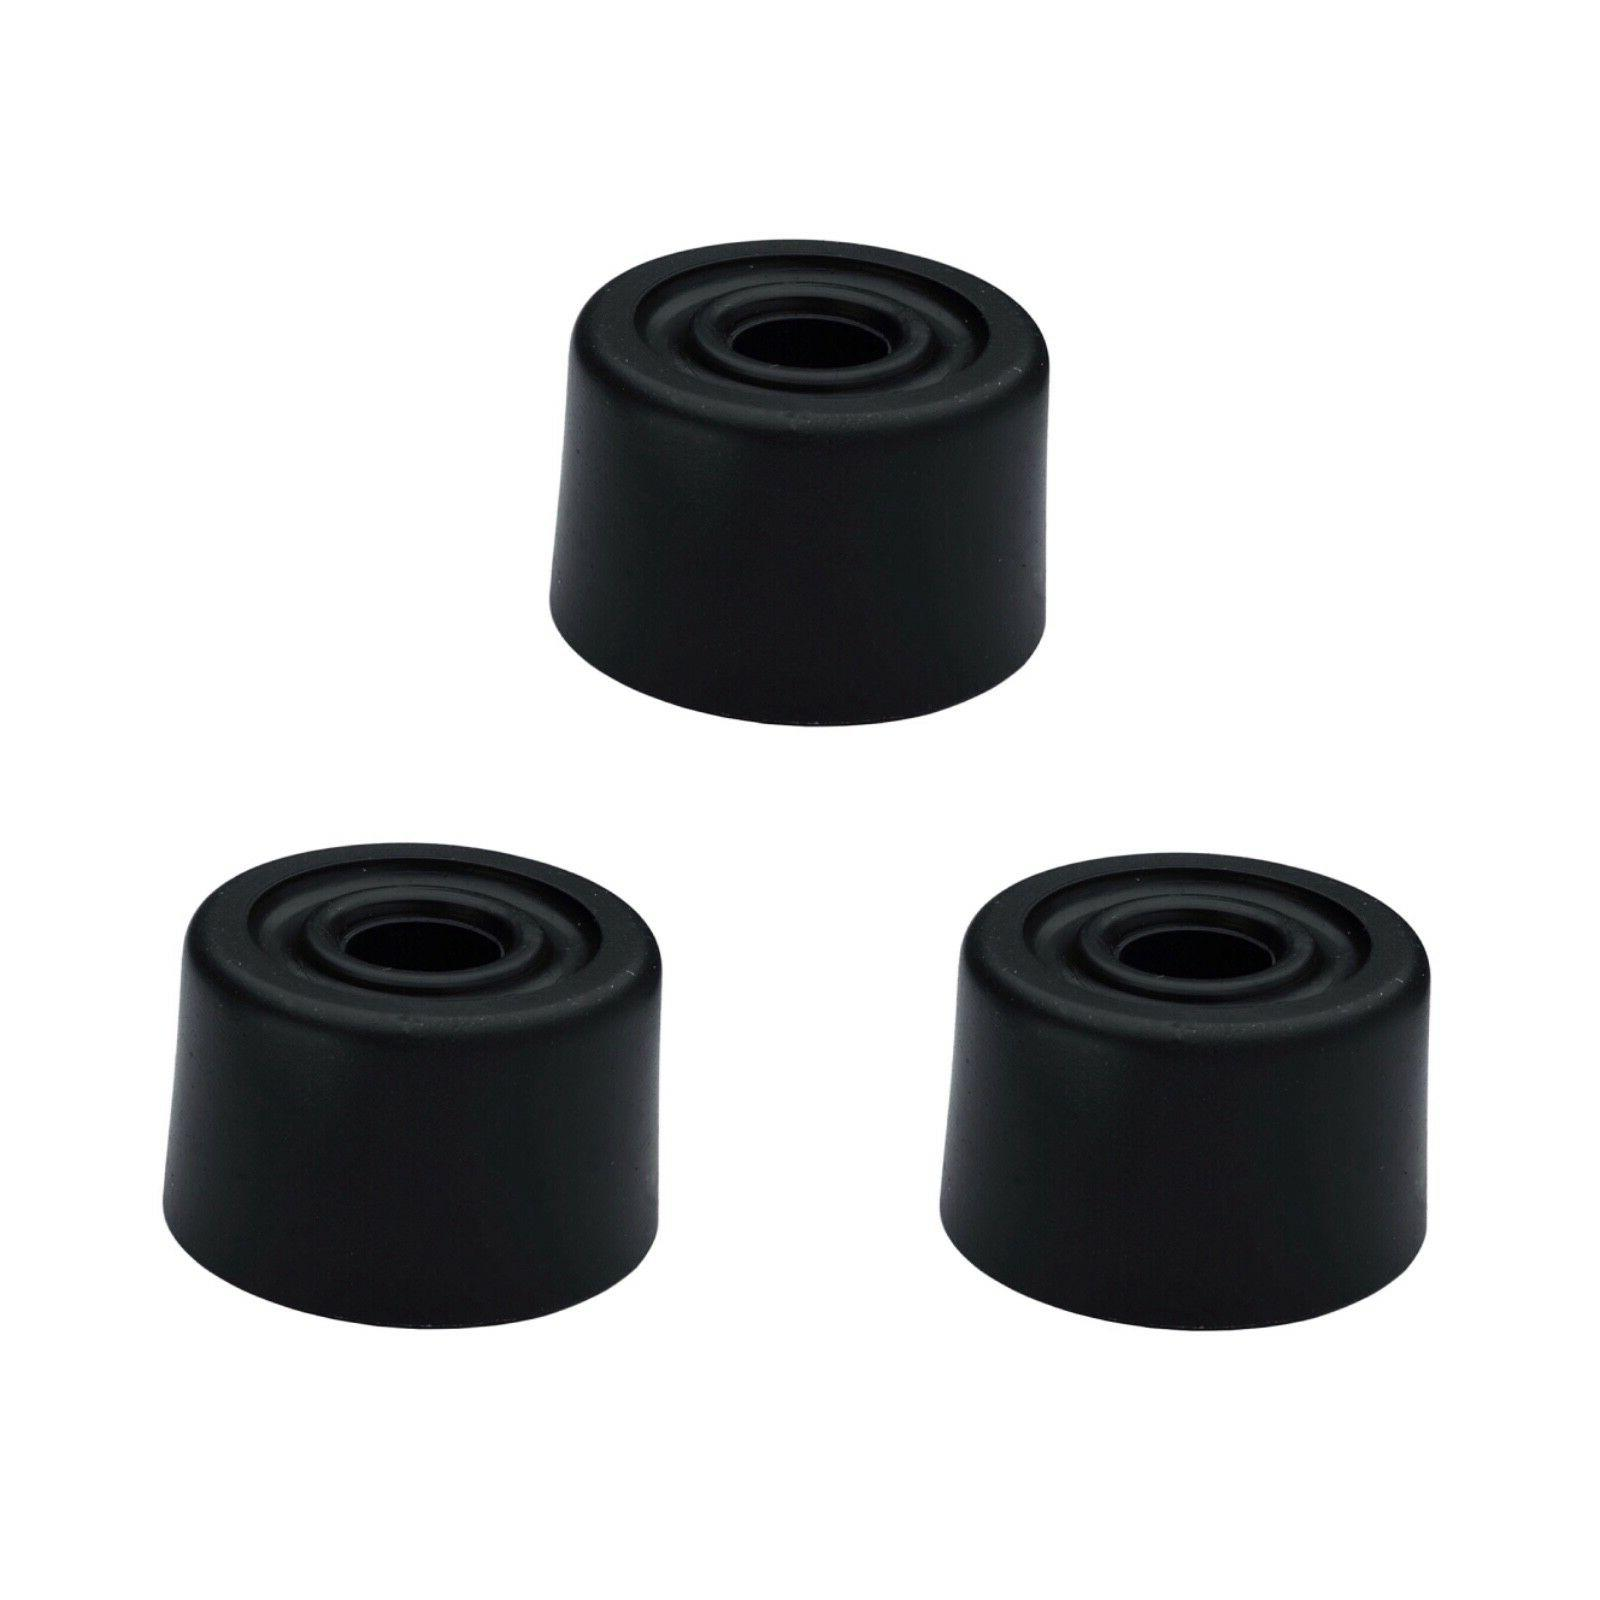 3 x Large Black Rubber Door Stop Stops Stopper 33mm